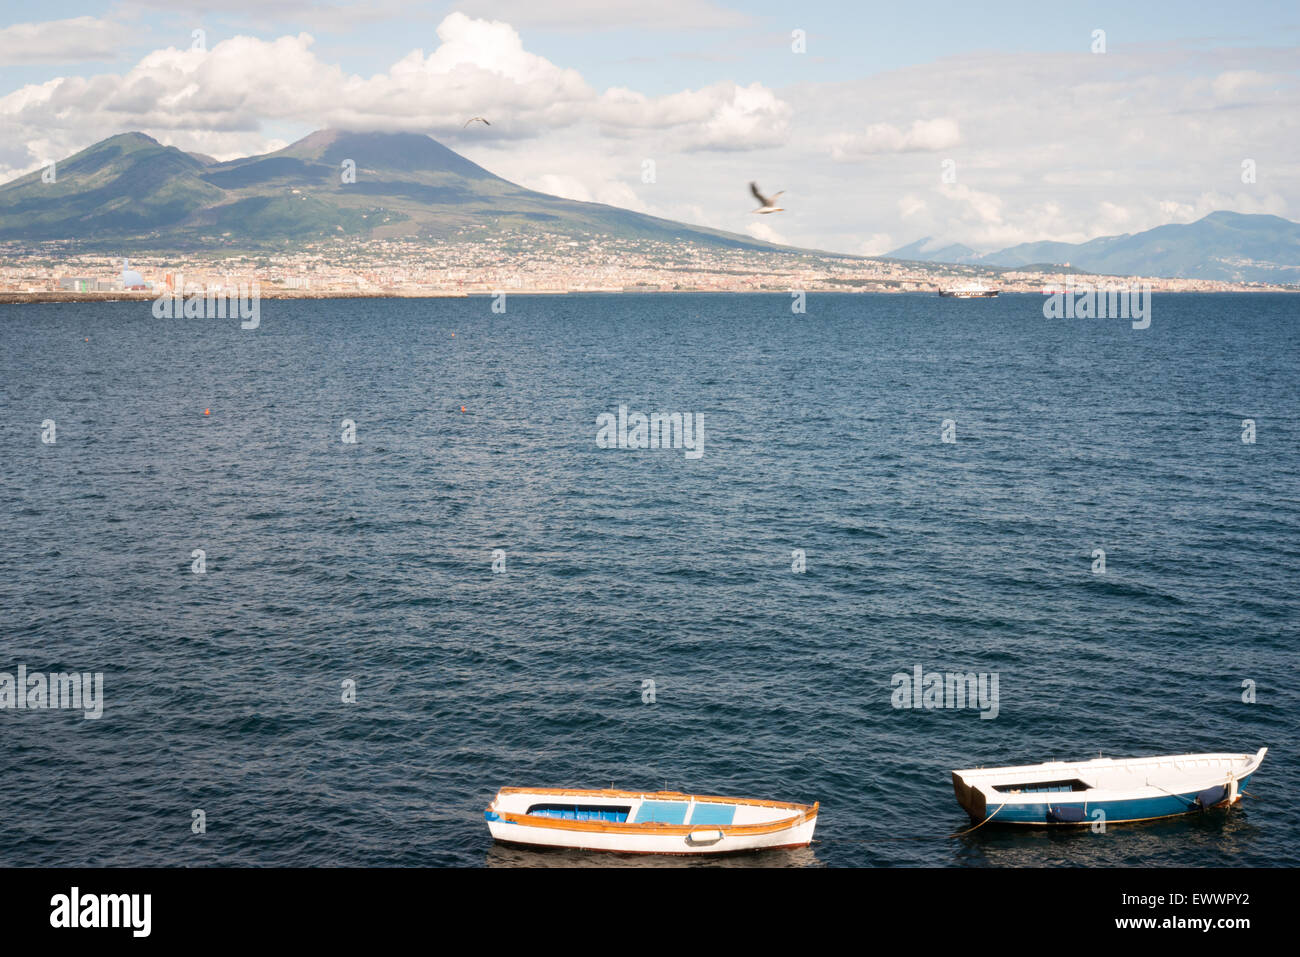 View of the mount Vesuvius, two fishing boats and the Gulf of Naples from Mergellina - Stock Image